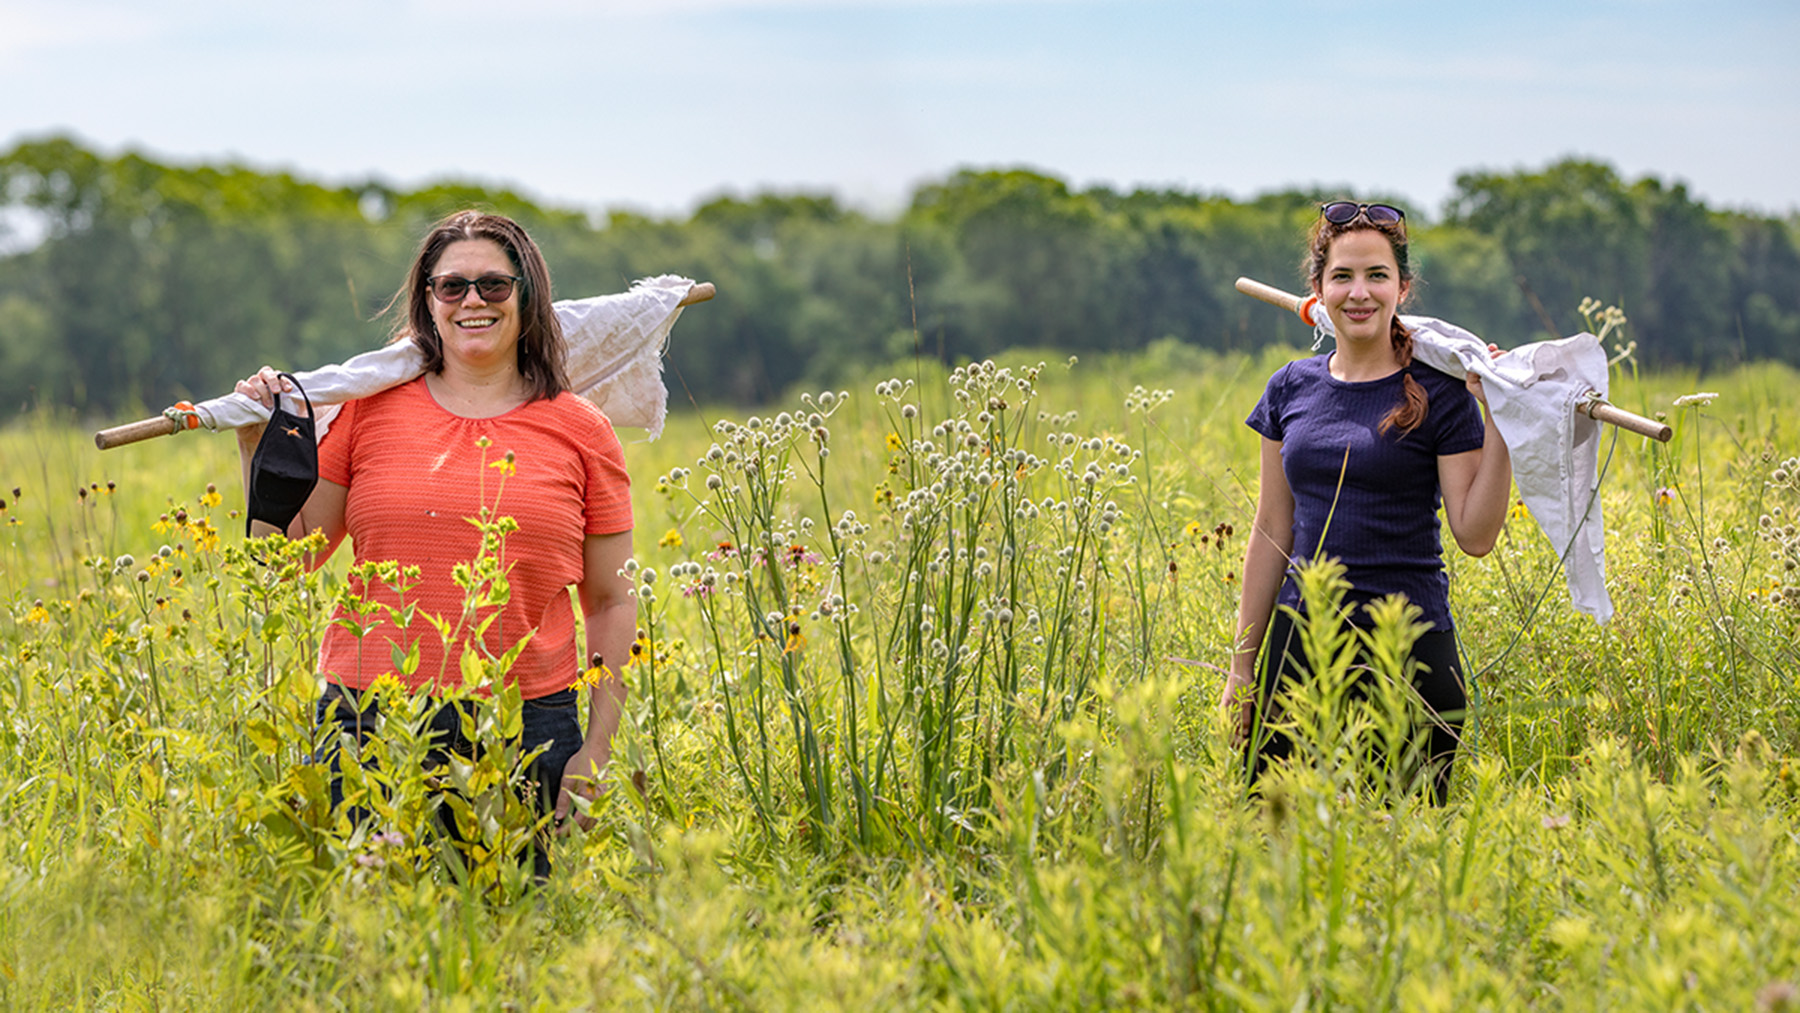 1.	Illinois Natural History Survey vector ecologist Holly Tuten, left, graduate student Erica Hernandez and their colleagues discovered that Lone Star ticks in two Illinois counties were infected with the Heartland virus. Photo by Fred Zwicky